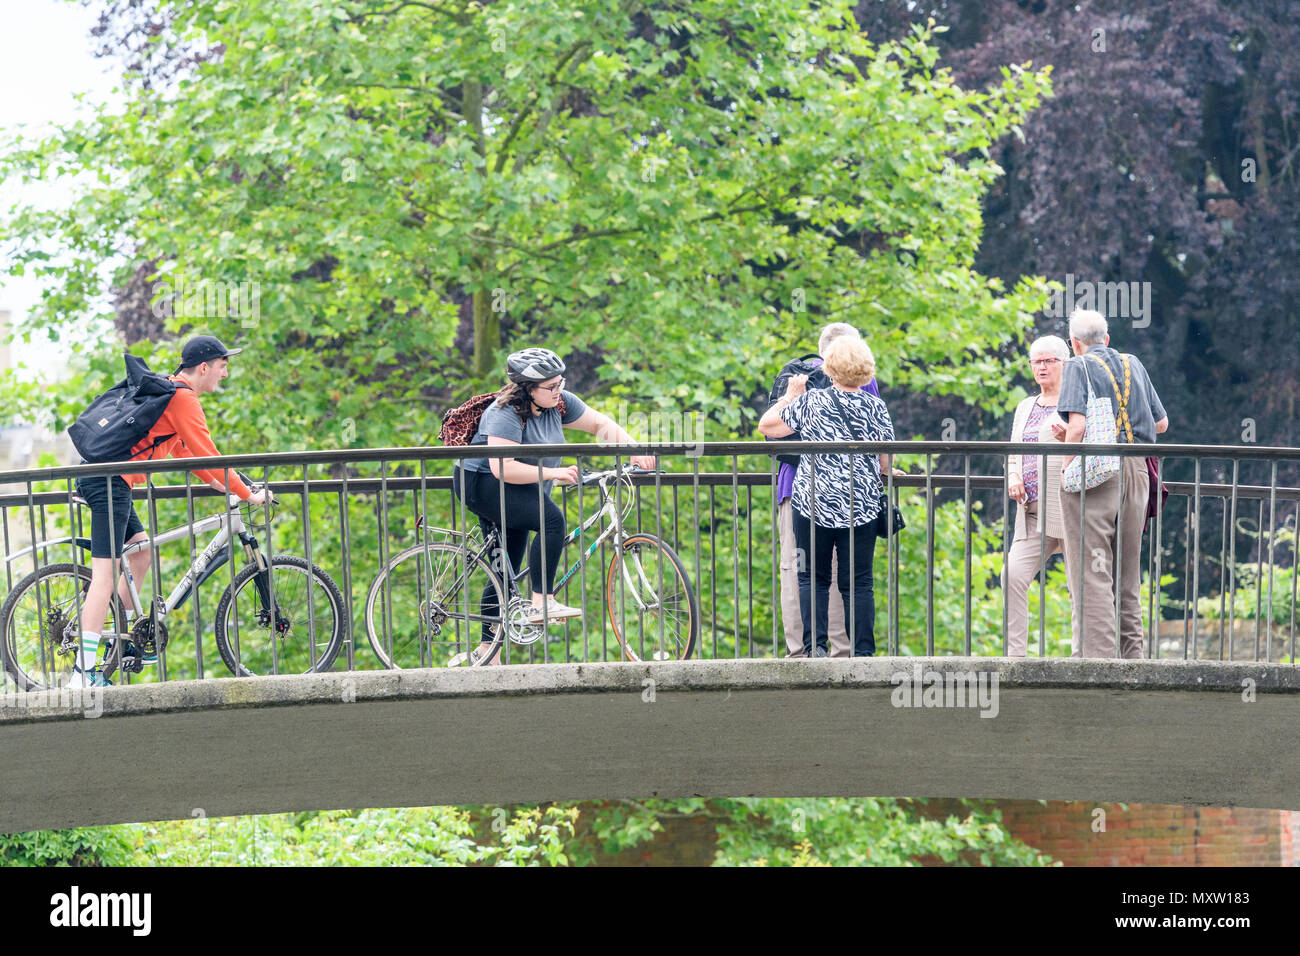 Students on bicycles stop for retired couples on Garret Hostel lane bridge over the river Cam, Trinity Hall college, university of Cambridge, England. - Stock Image